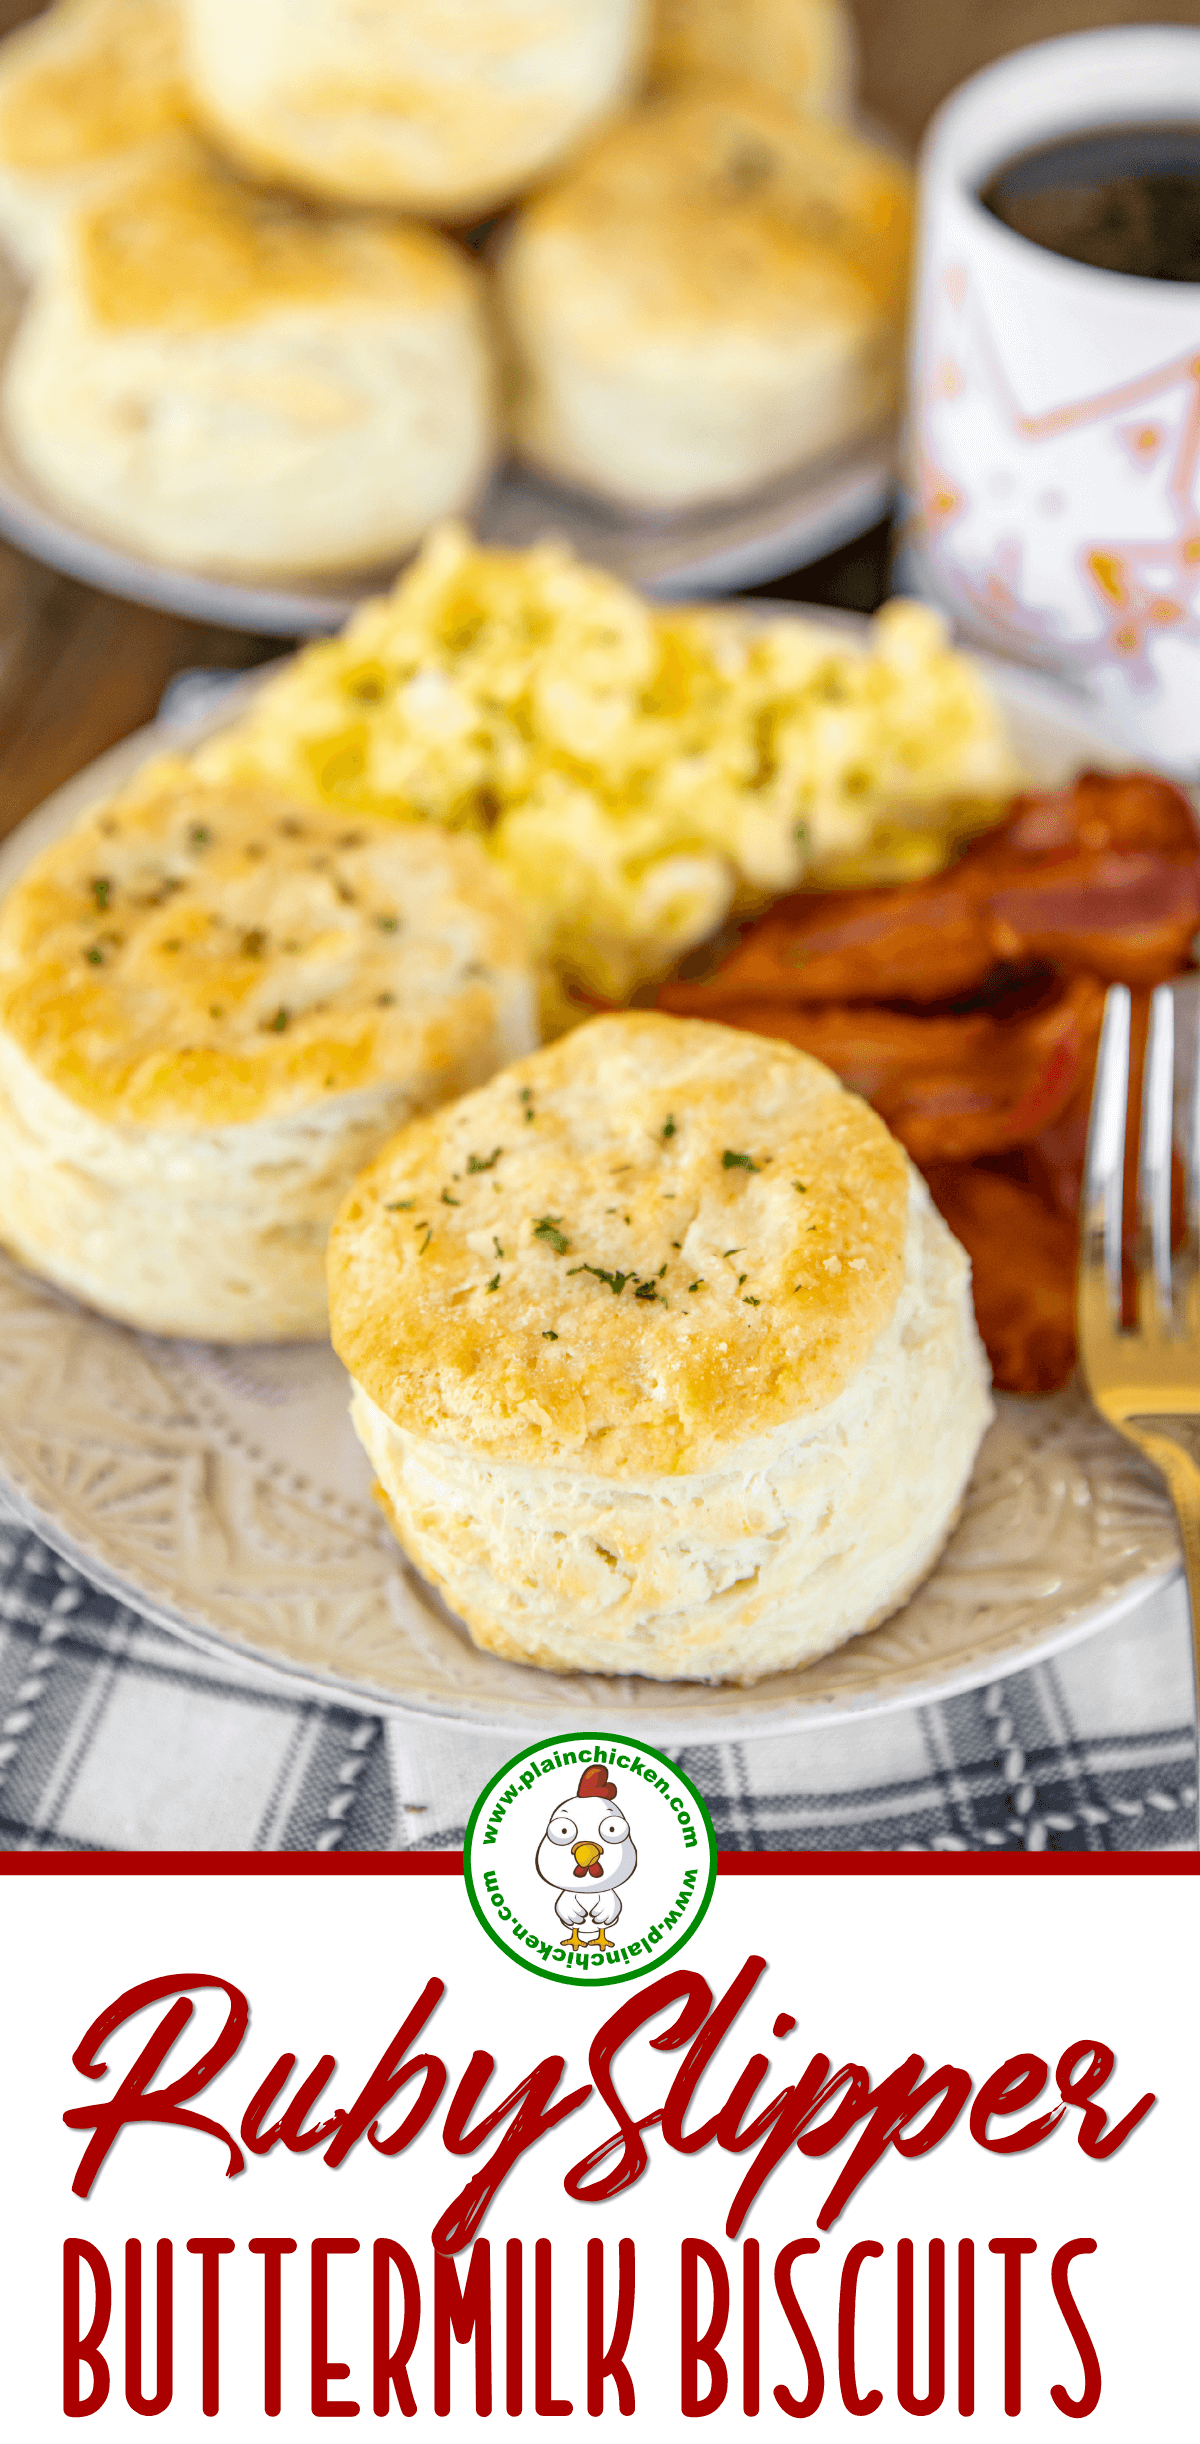 Ruby Slipper Buttermilk Biscuits In 2020 Buttermilk Biscuits Biscuit Recipe Favorite Recipes Chicken